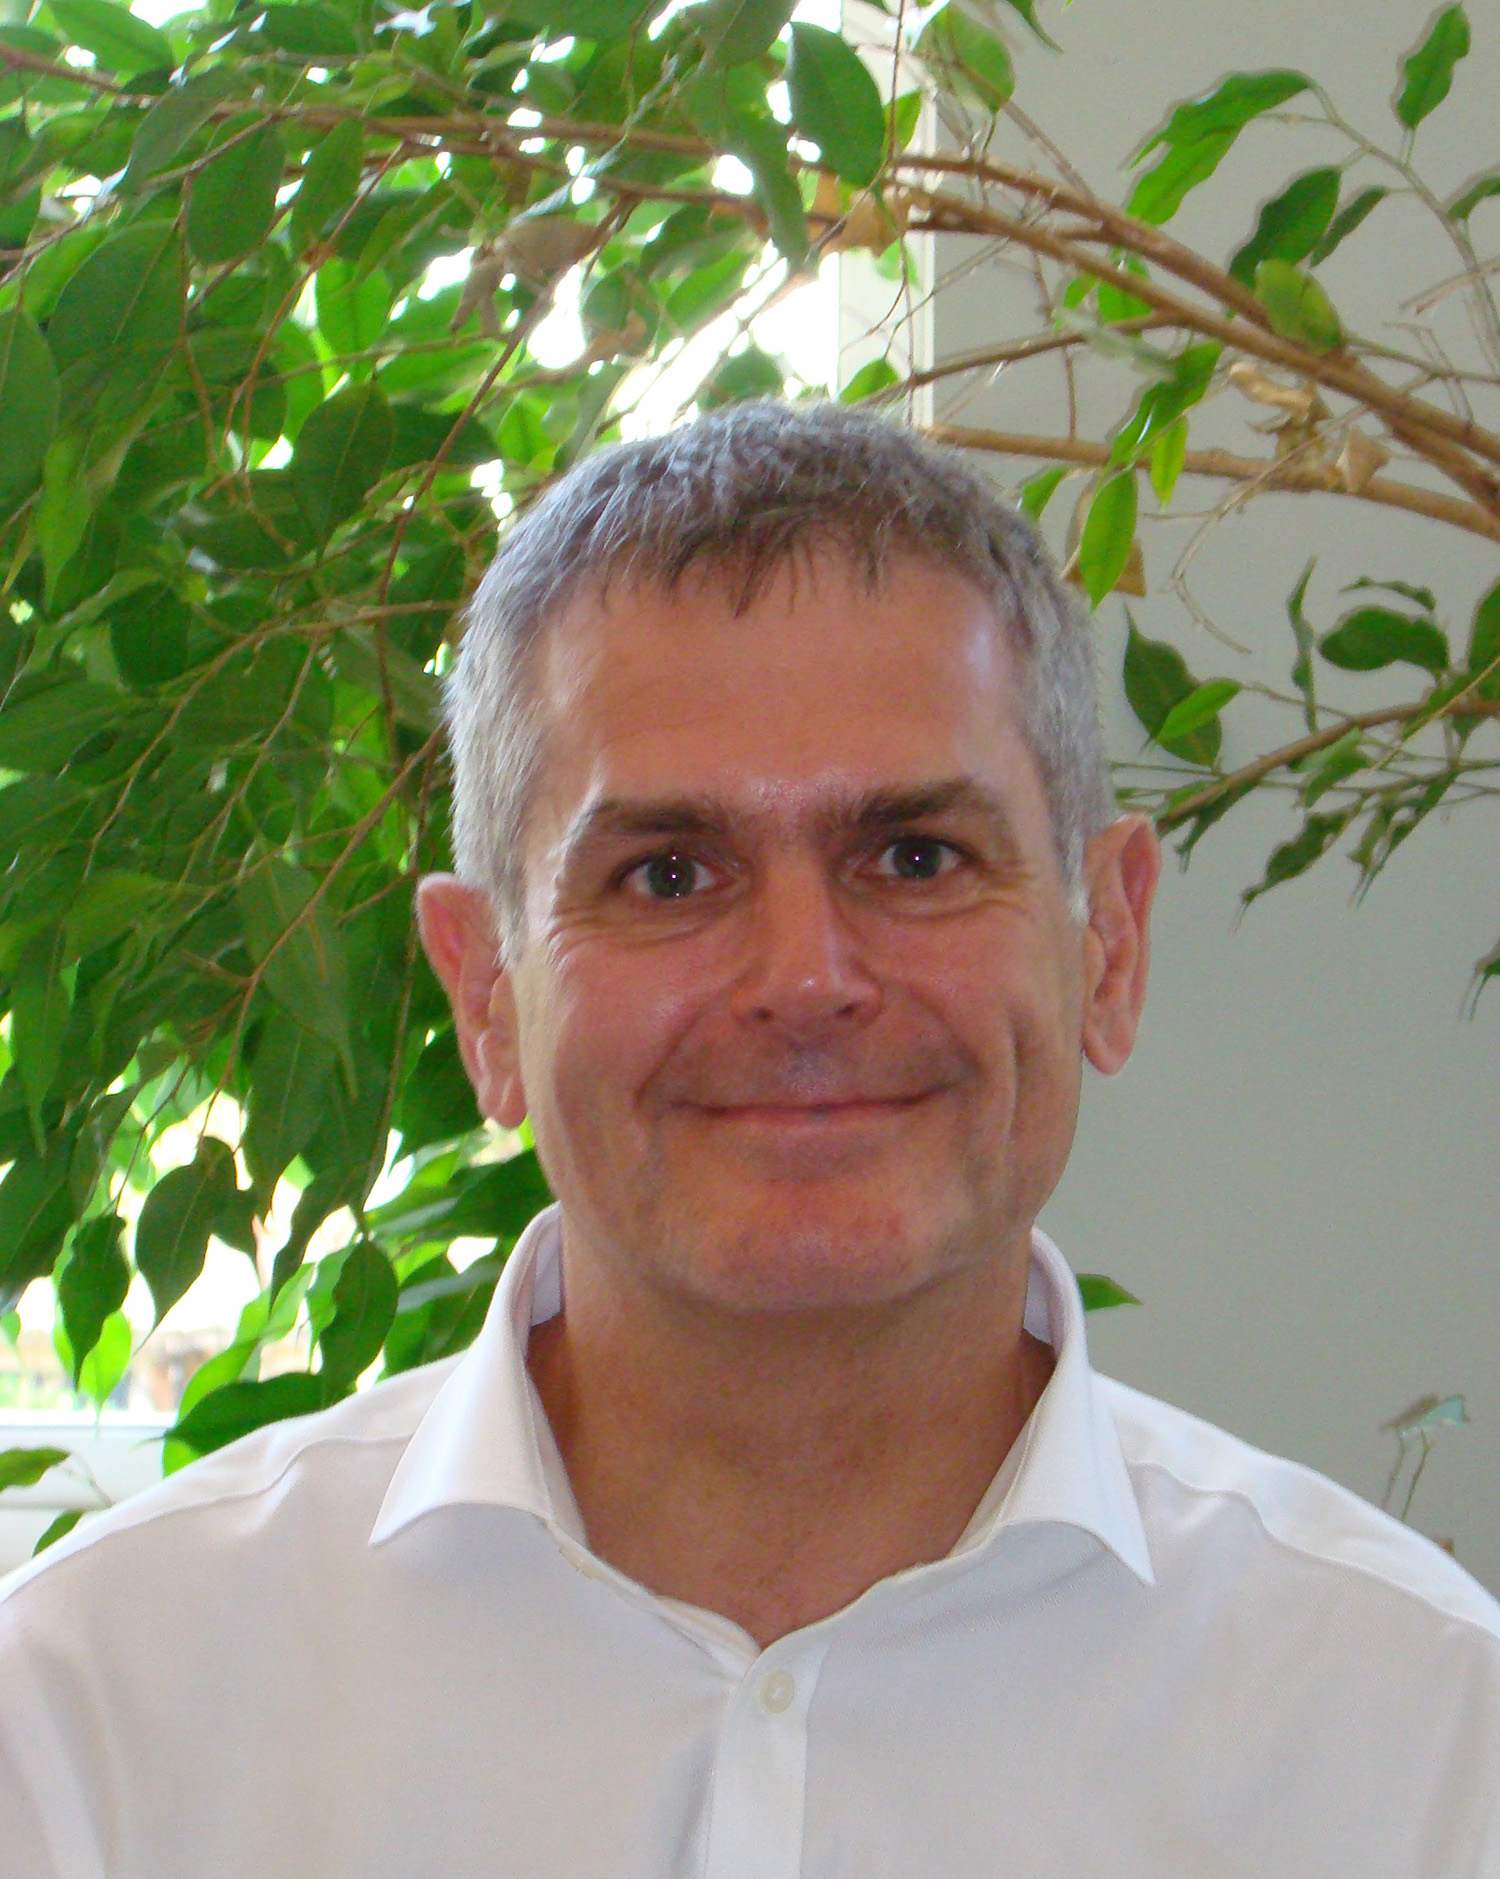 Chris Steele appointed Senior Product Manager 4